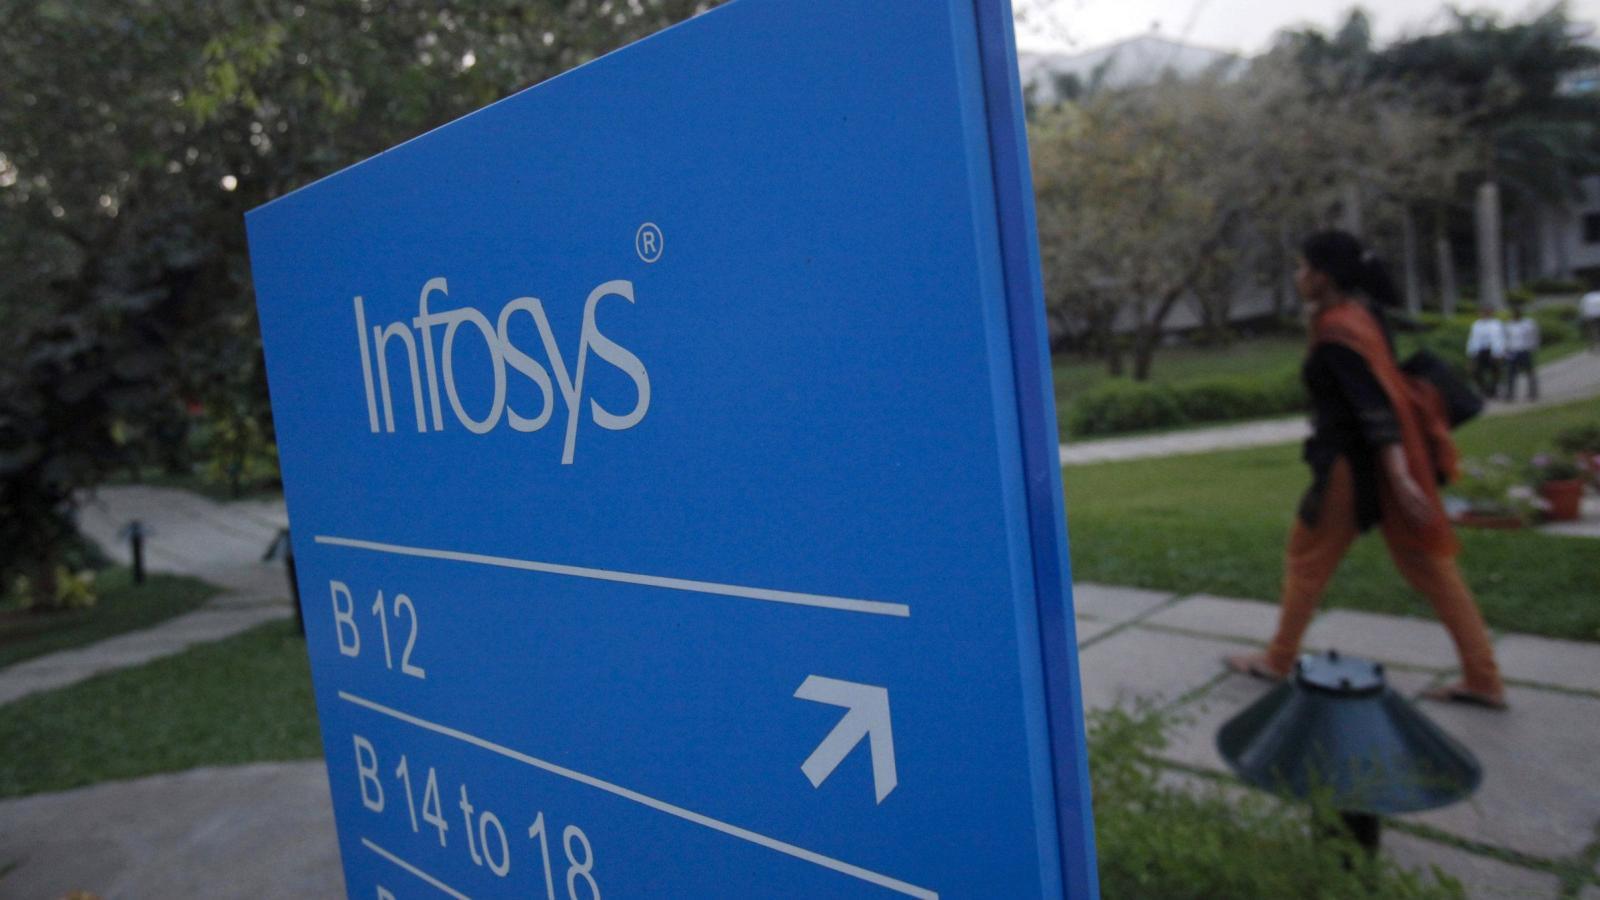 The search is not over: 13 senior executives left Infosys in the